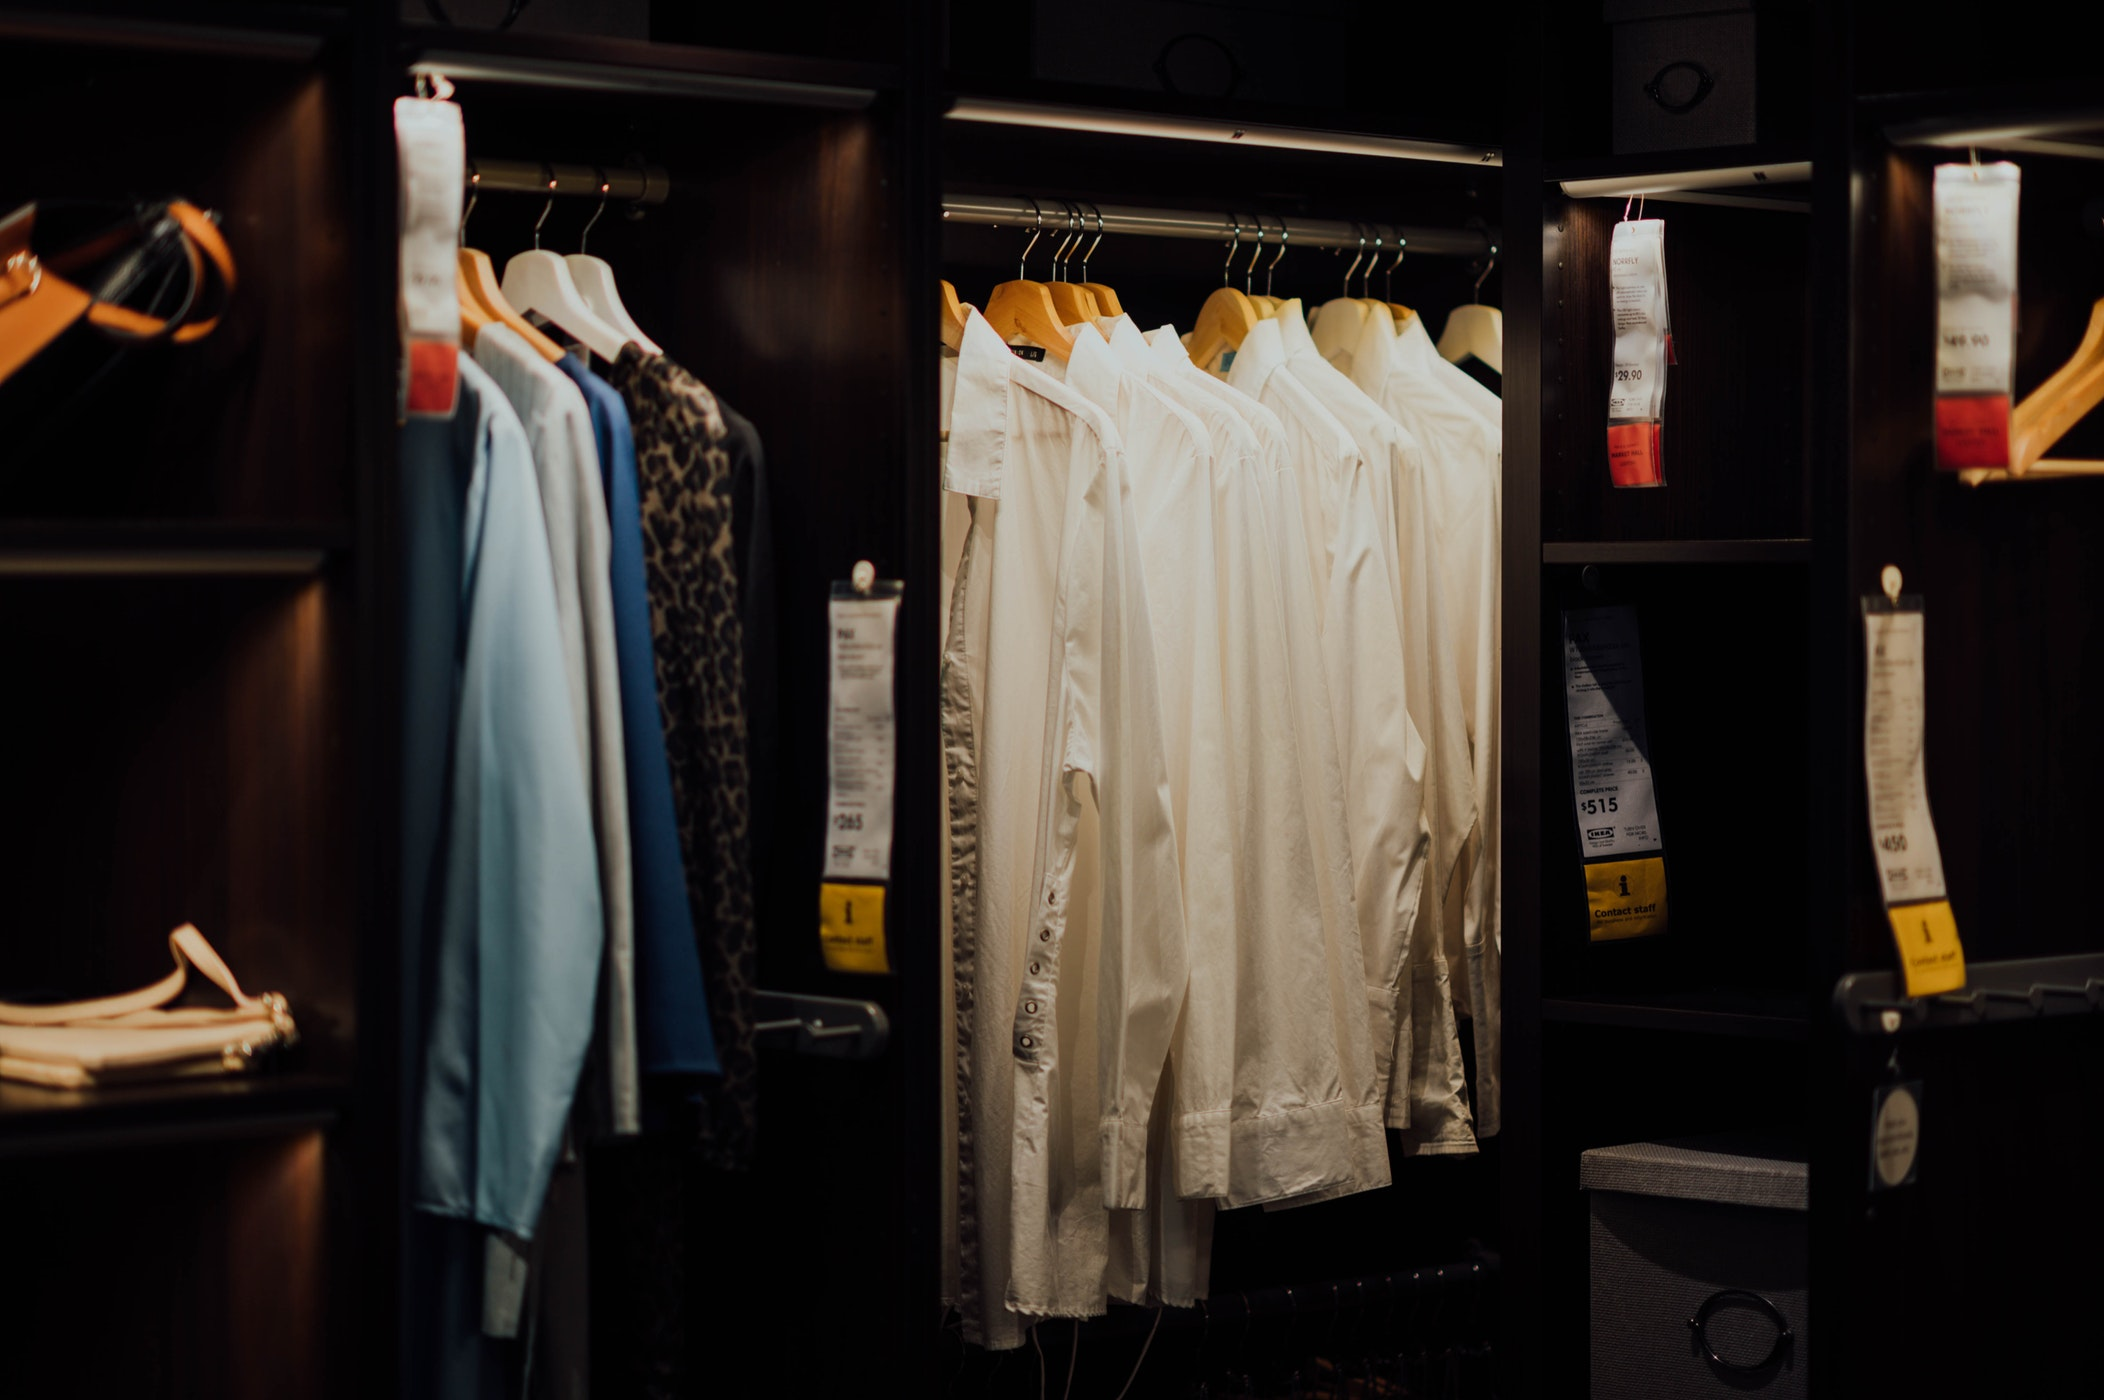 How Much Does A Walk In Closet Cost